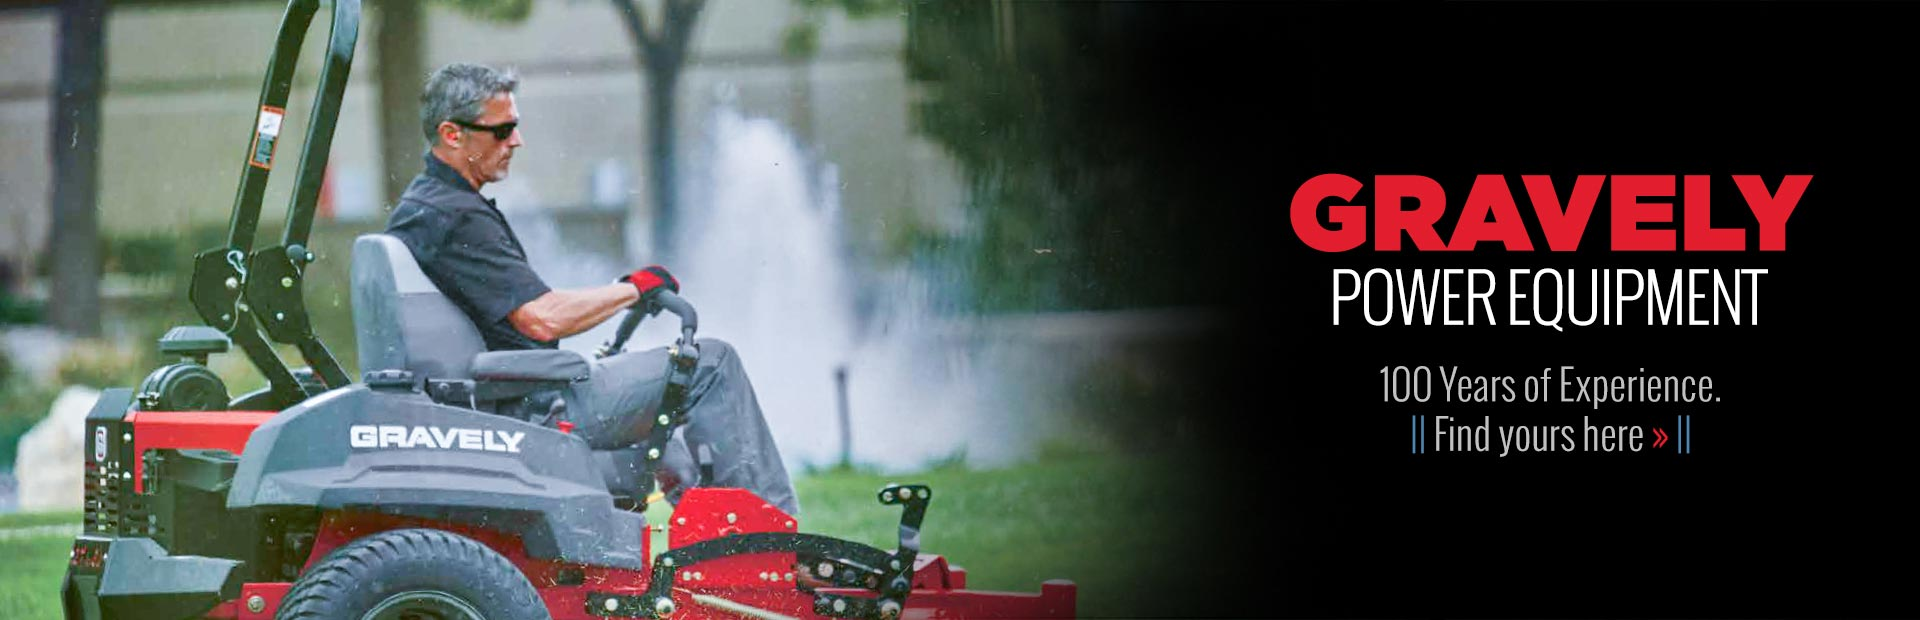 Honda Blowers Dealer Miami Fl >> Home Ace Lawnmower Service Inc Miami Fl 305 261 6912